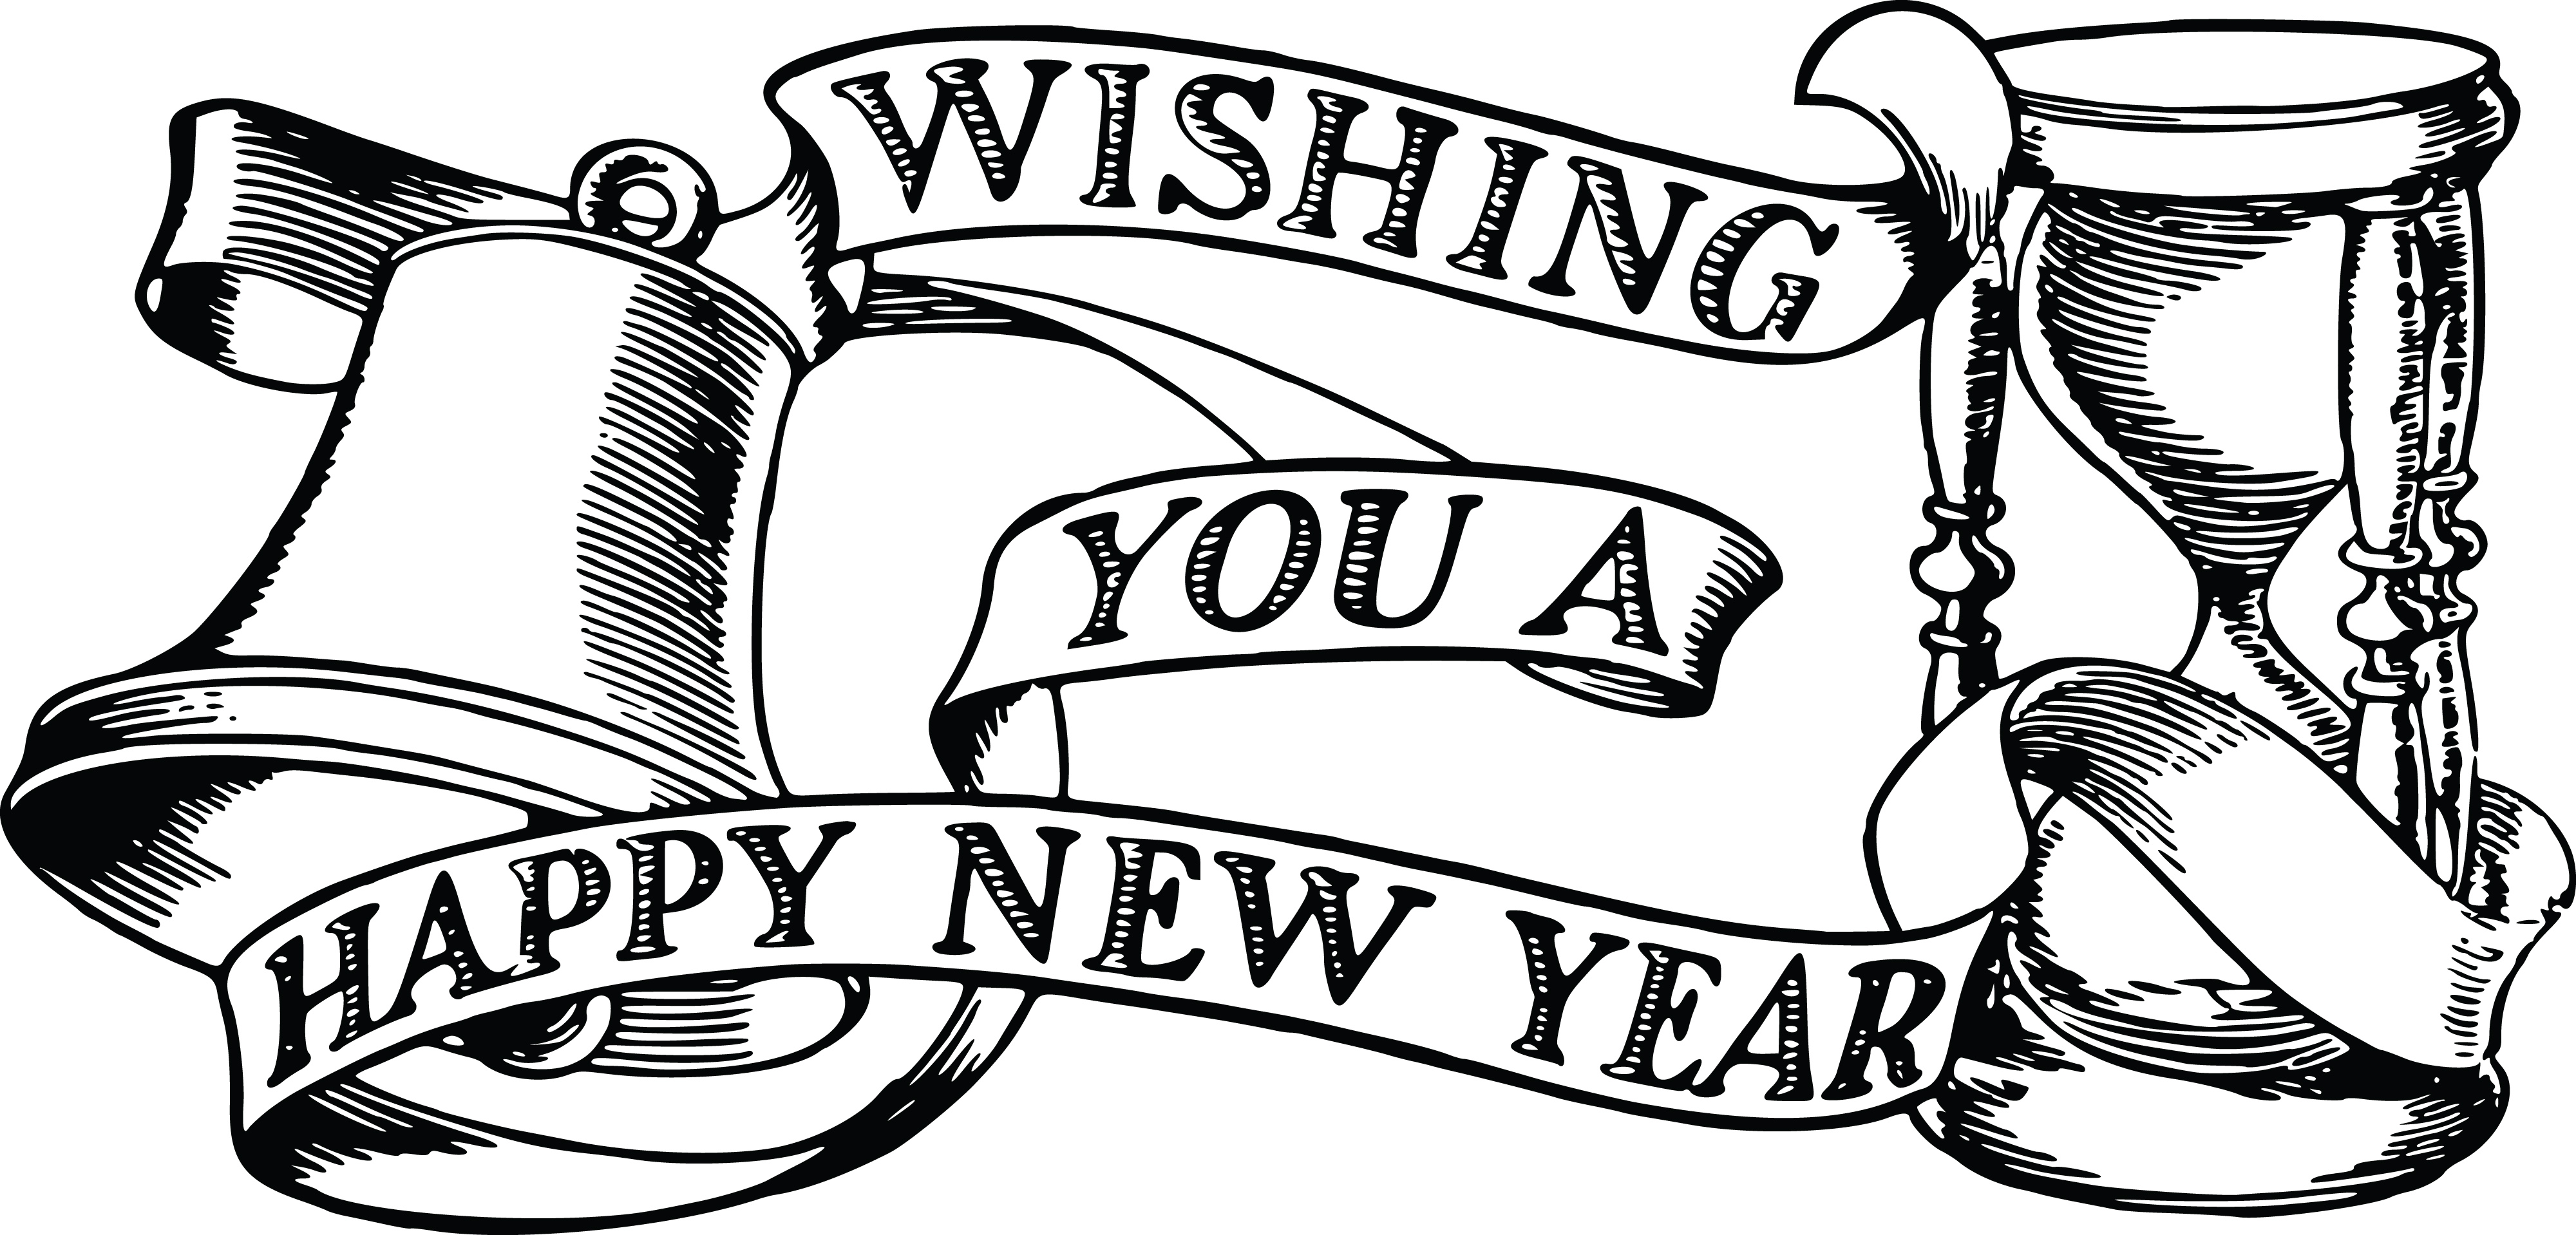 Free Clipart Of A Bell Hourglass And Happy New Year Banner #00011822 .